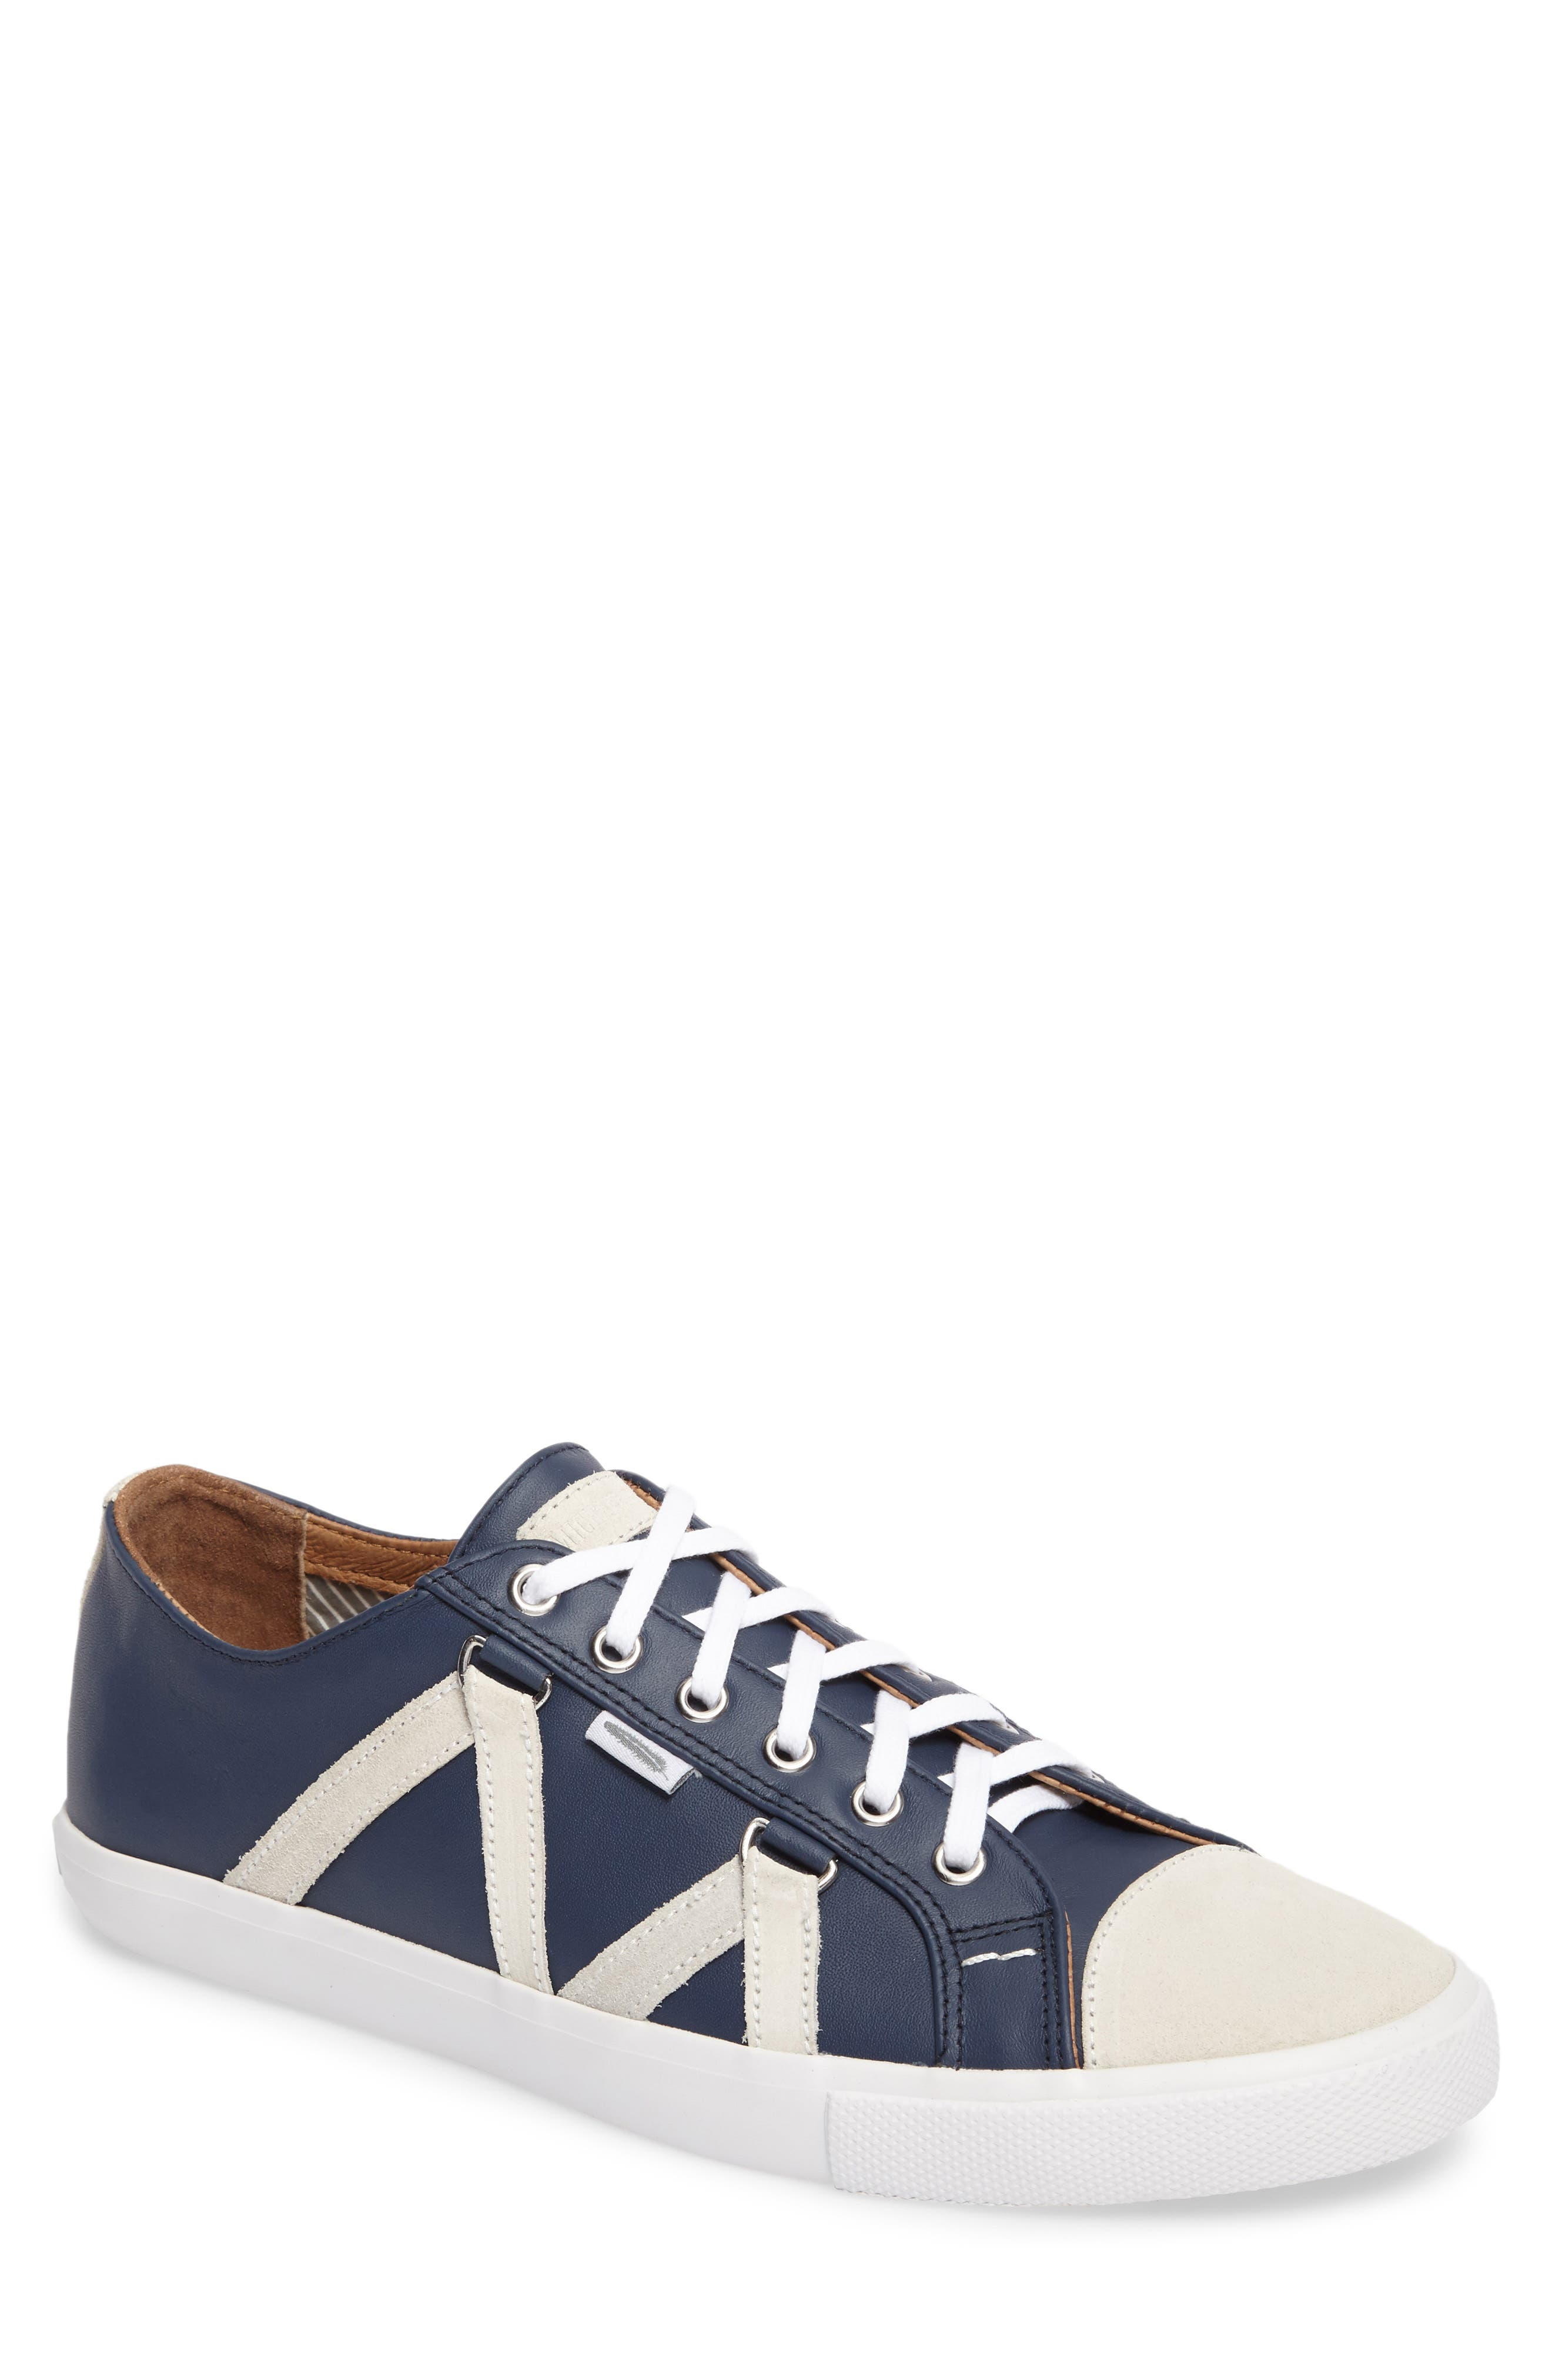 Signature Sneaker,                             Main thumbnail 1, color,                             NAVY LEATHER